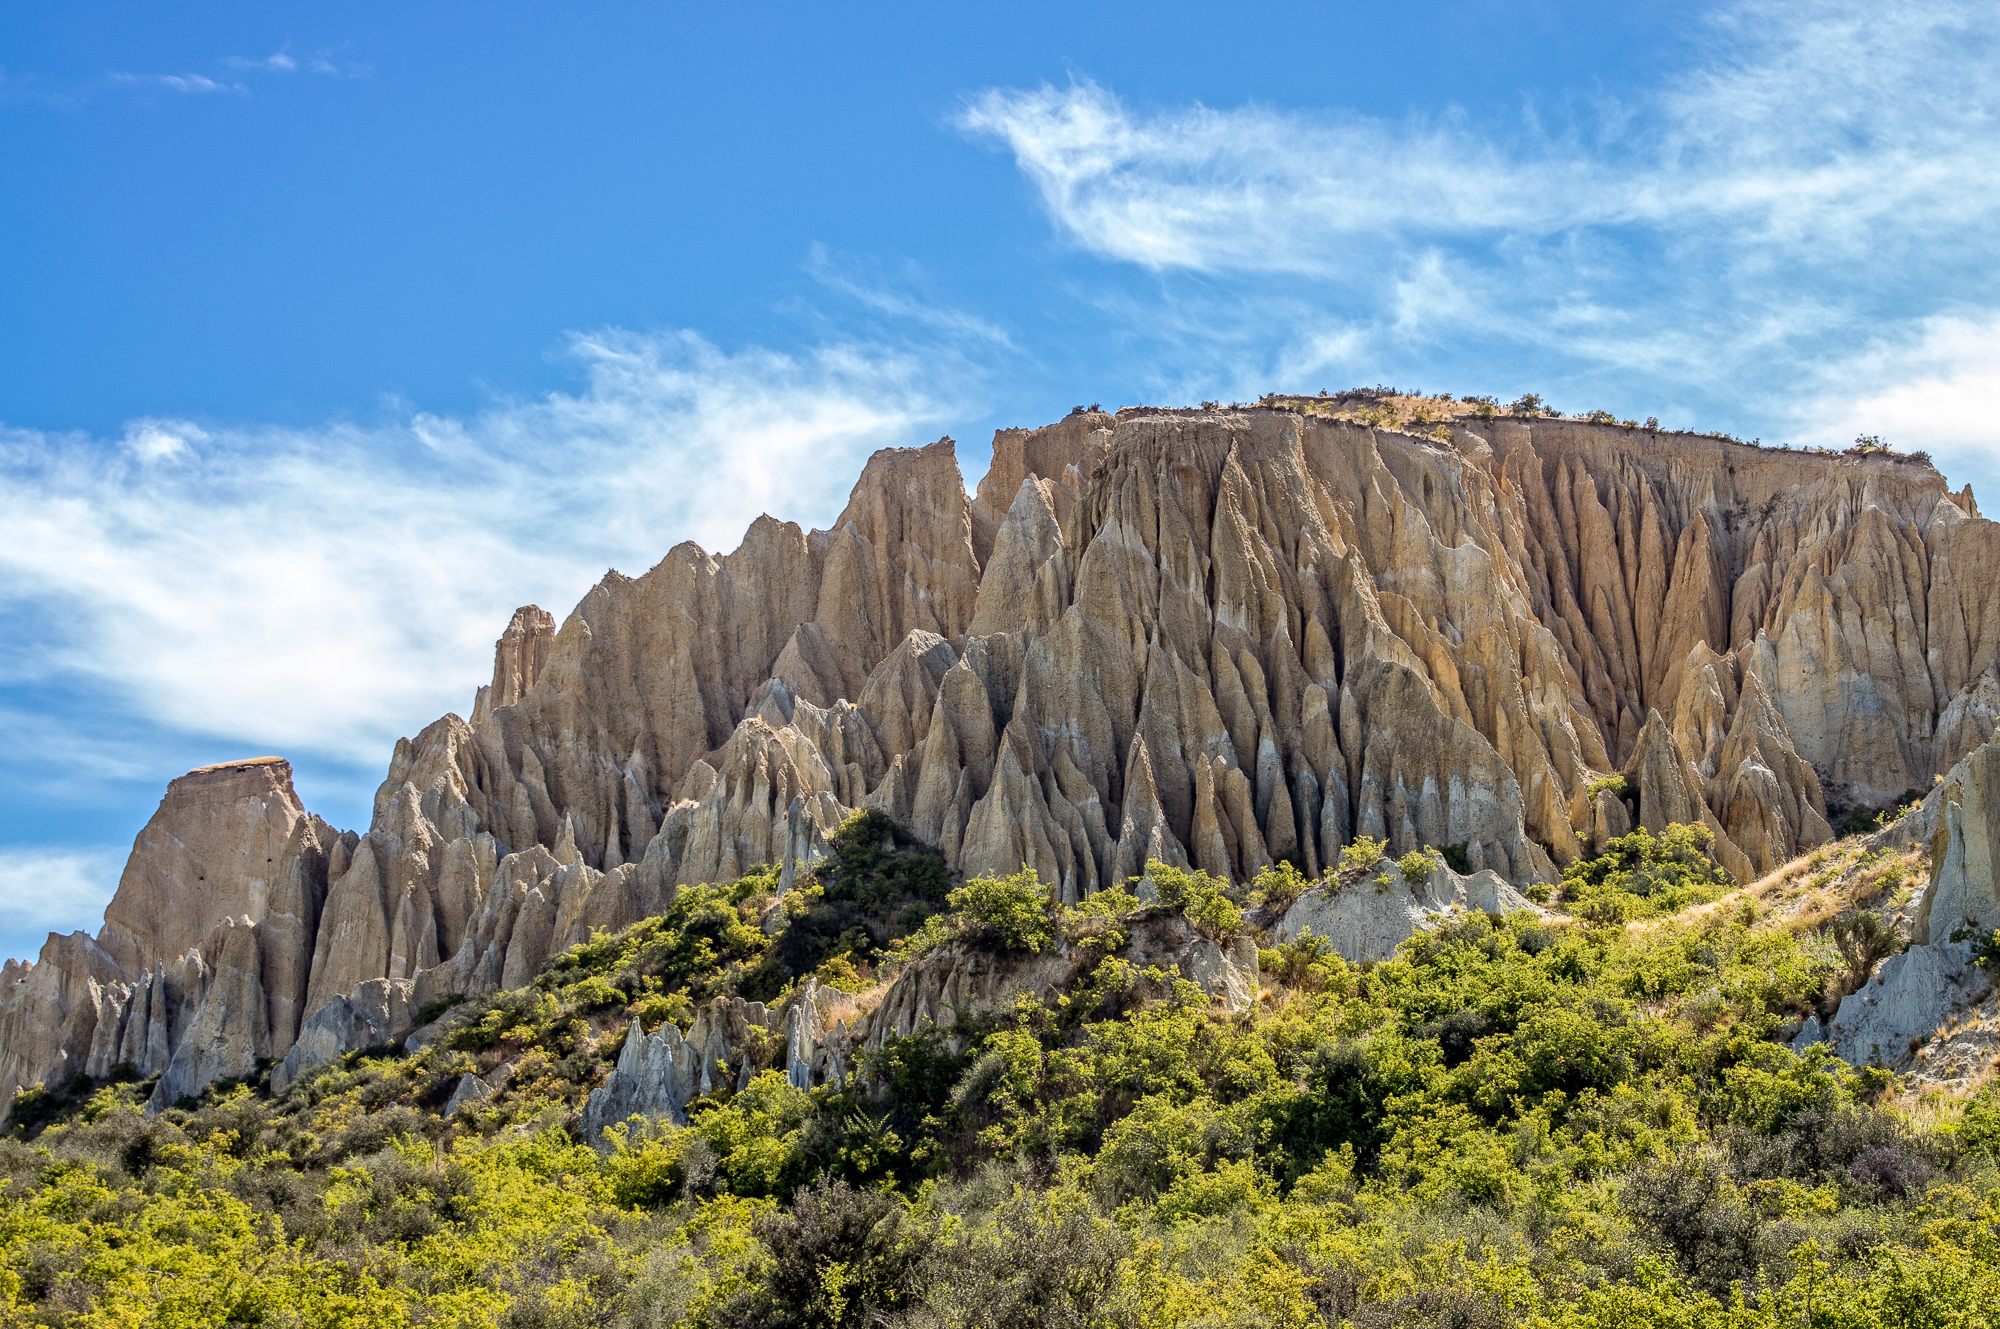 Omarama New Zealand  city pictures gallery : Clay Cliffs, Omarama, New Zealand, Copyright Chris Gregory 2013